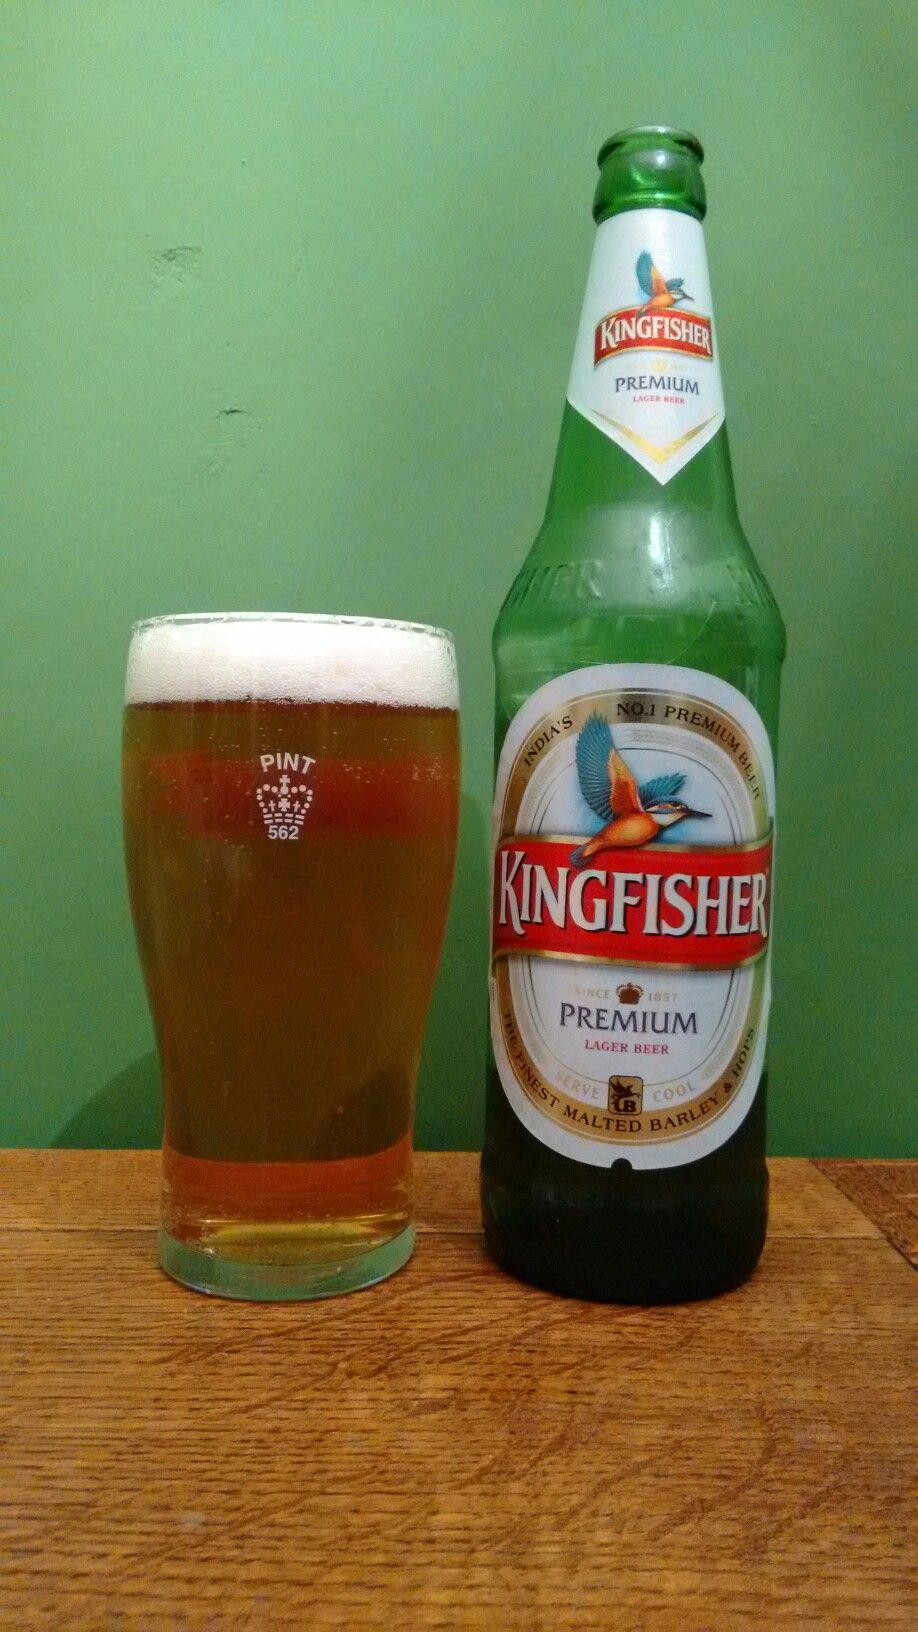 Kingfisher Premium Lager. An Indian Beer apparently but